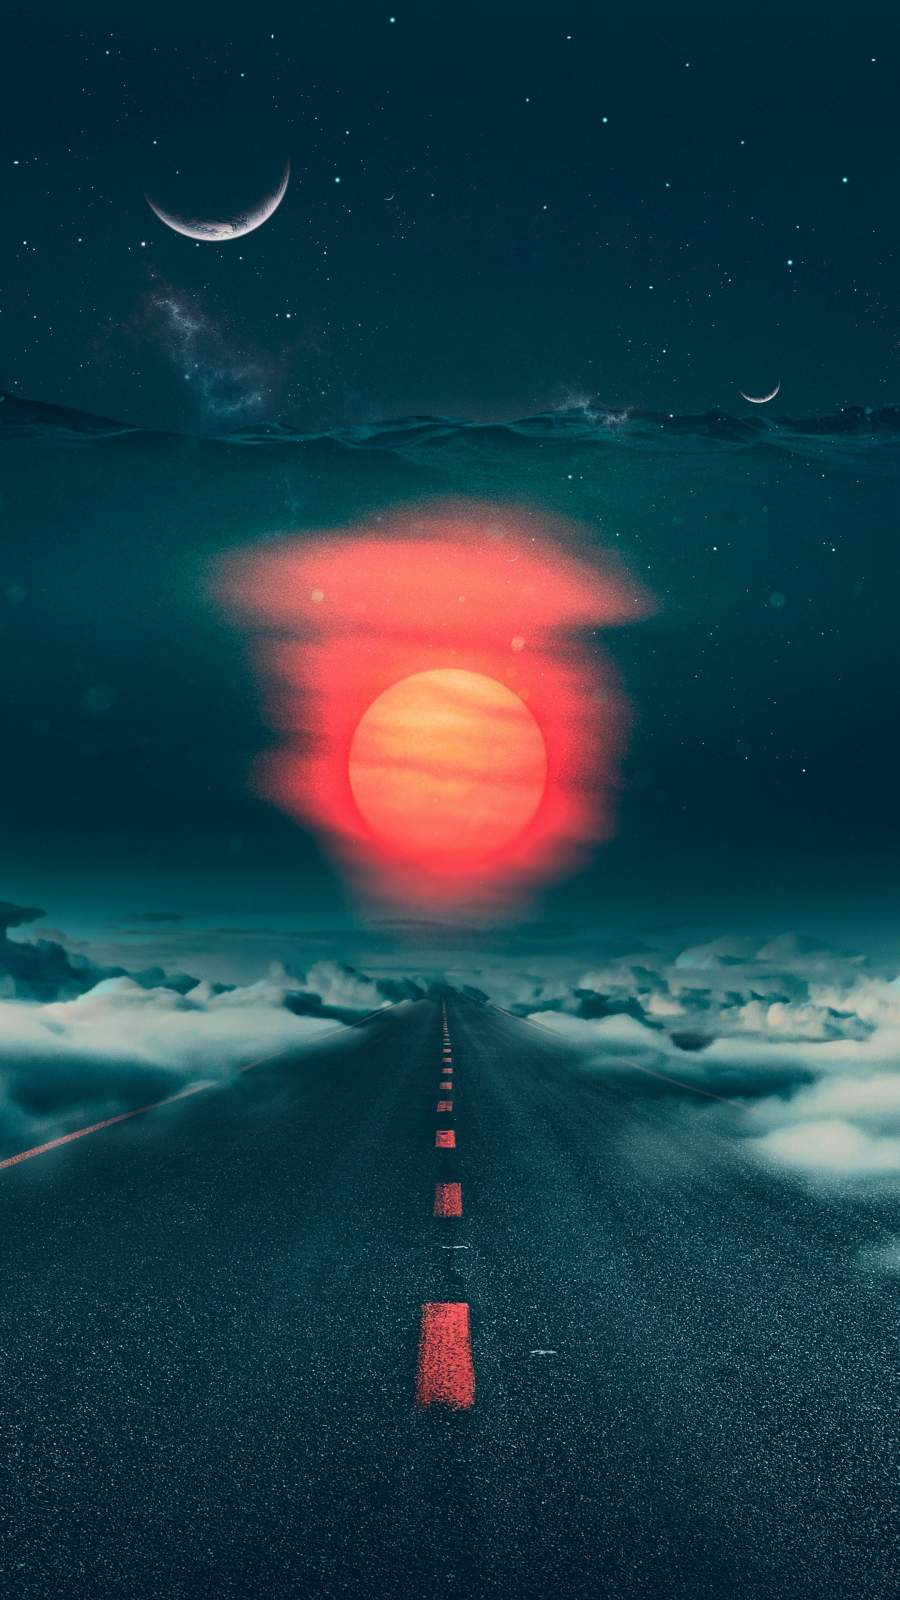 Cloudy Destination iPhone Wallpaper